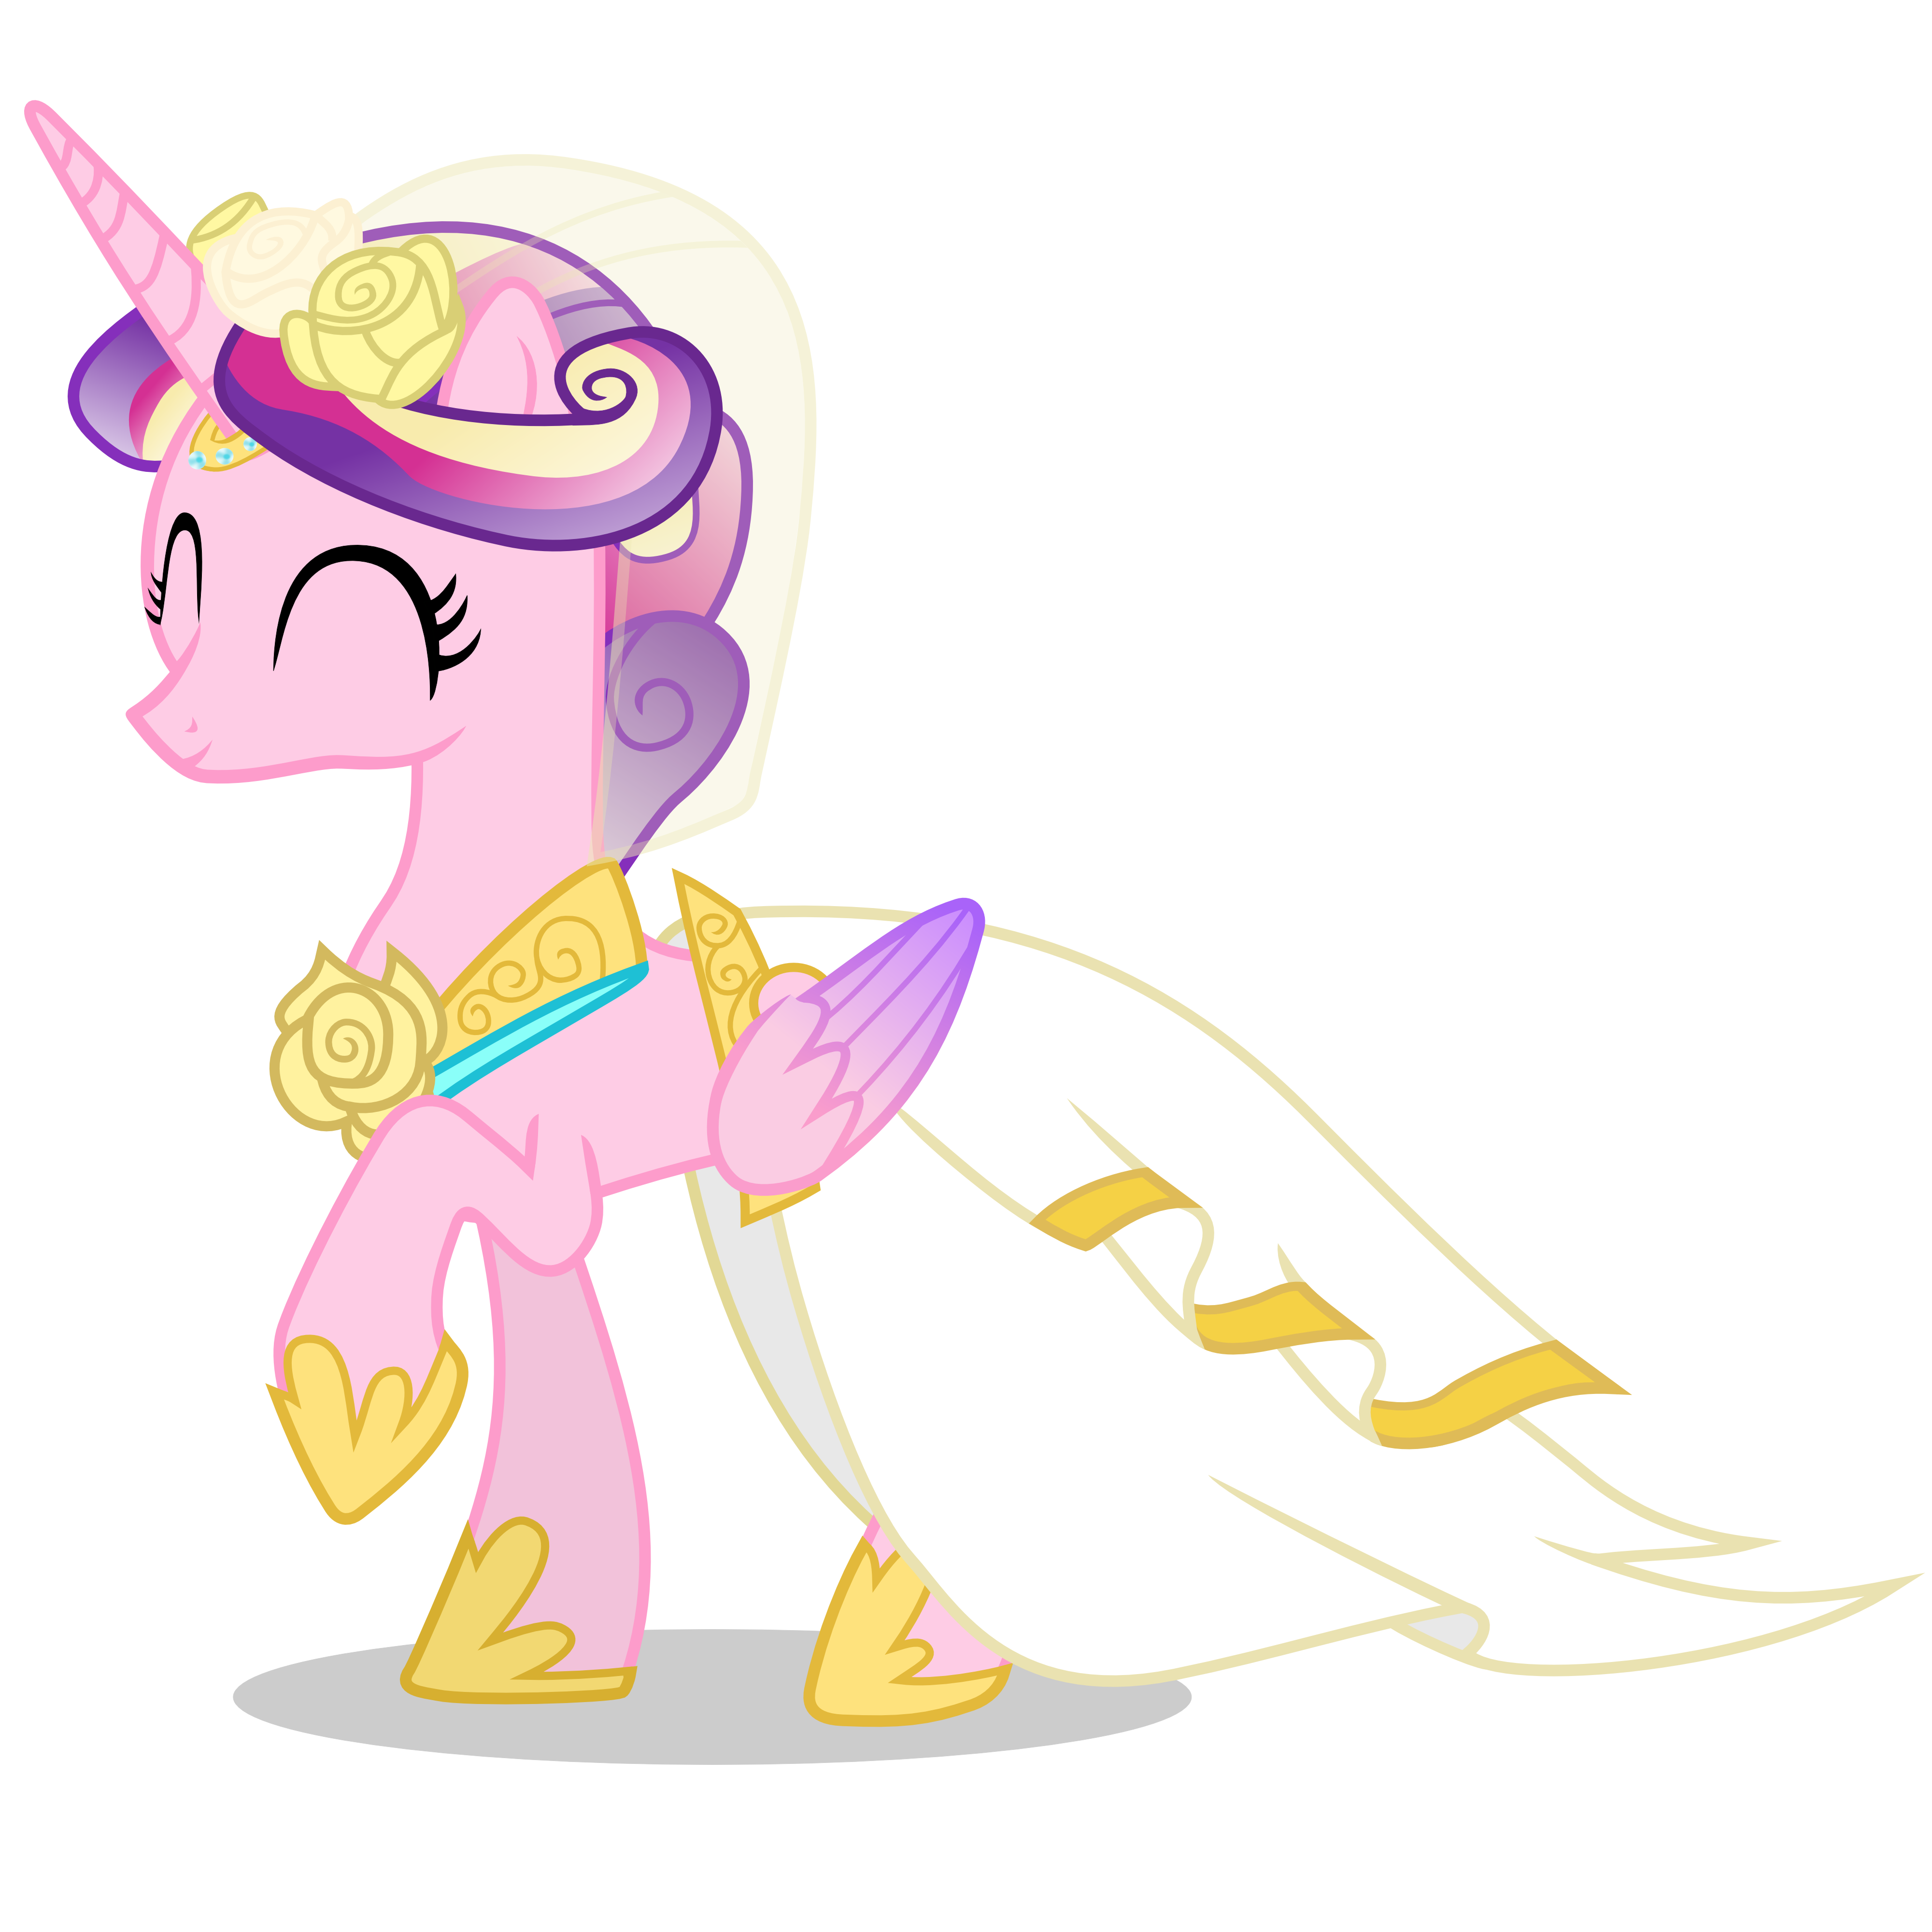 Princess Cadence In A Dress Google Search: Canterlot Wedding Cadence Dress Princess Wedding At Websimilar.org